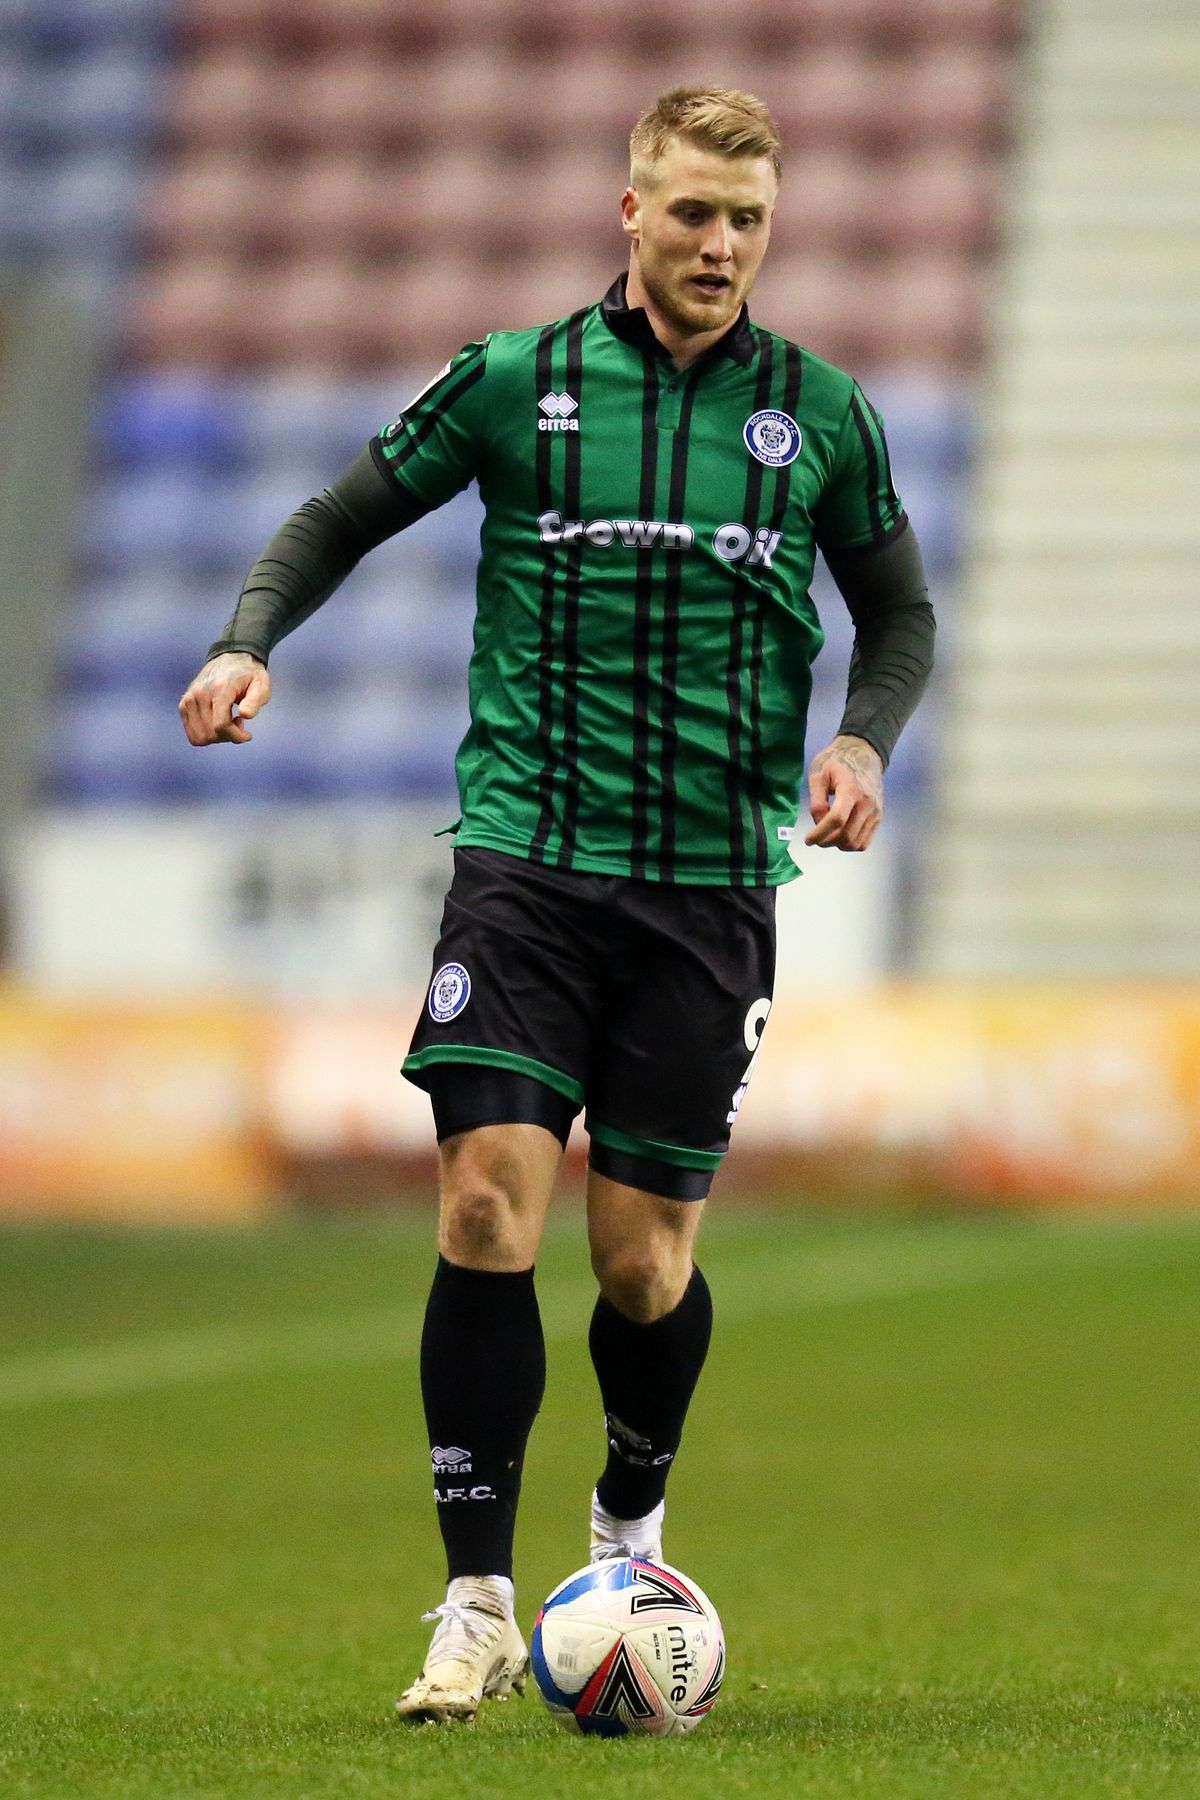 Wigan Athletic v Rochdale - Sky Bet League One